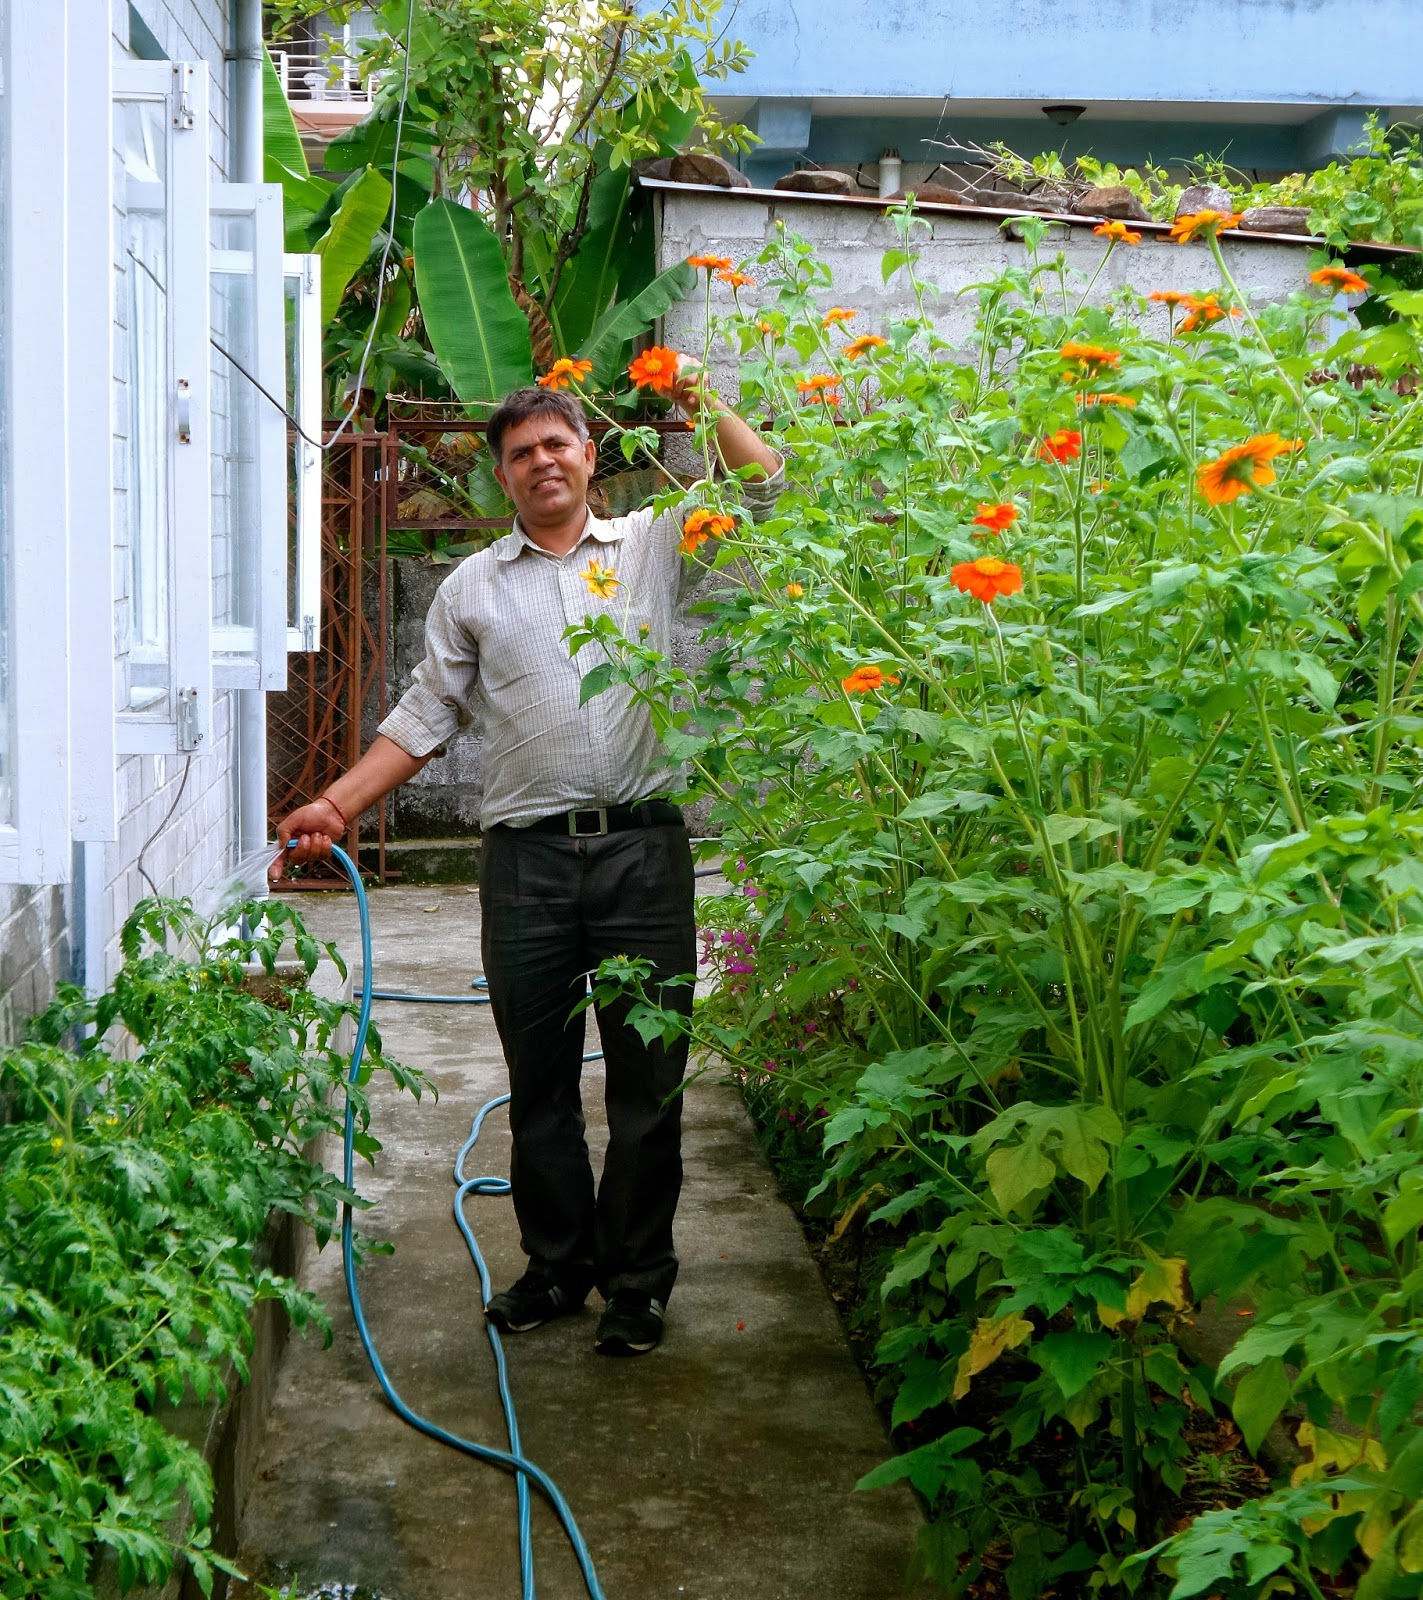 heres our gardener khashi watering the tomatoes alongside the border of mexican sunflowers khashi is about 55 so you can see the mexican sunflowers are